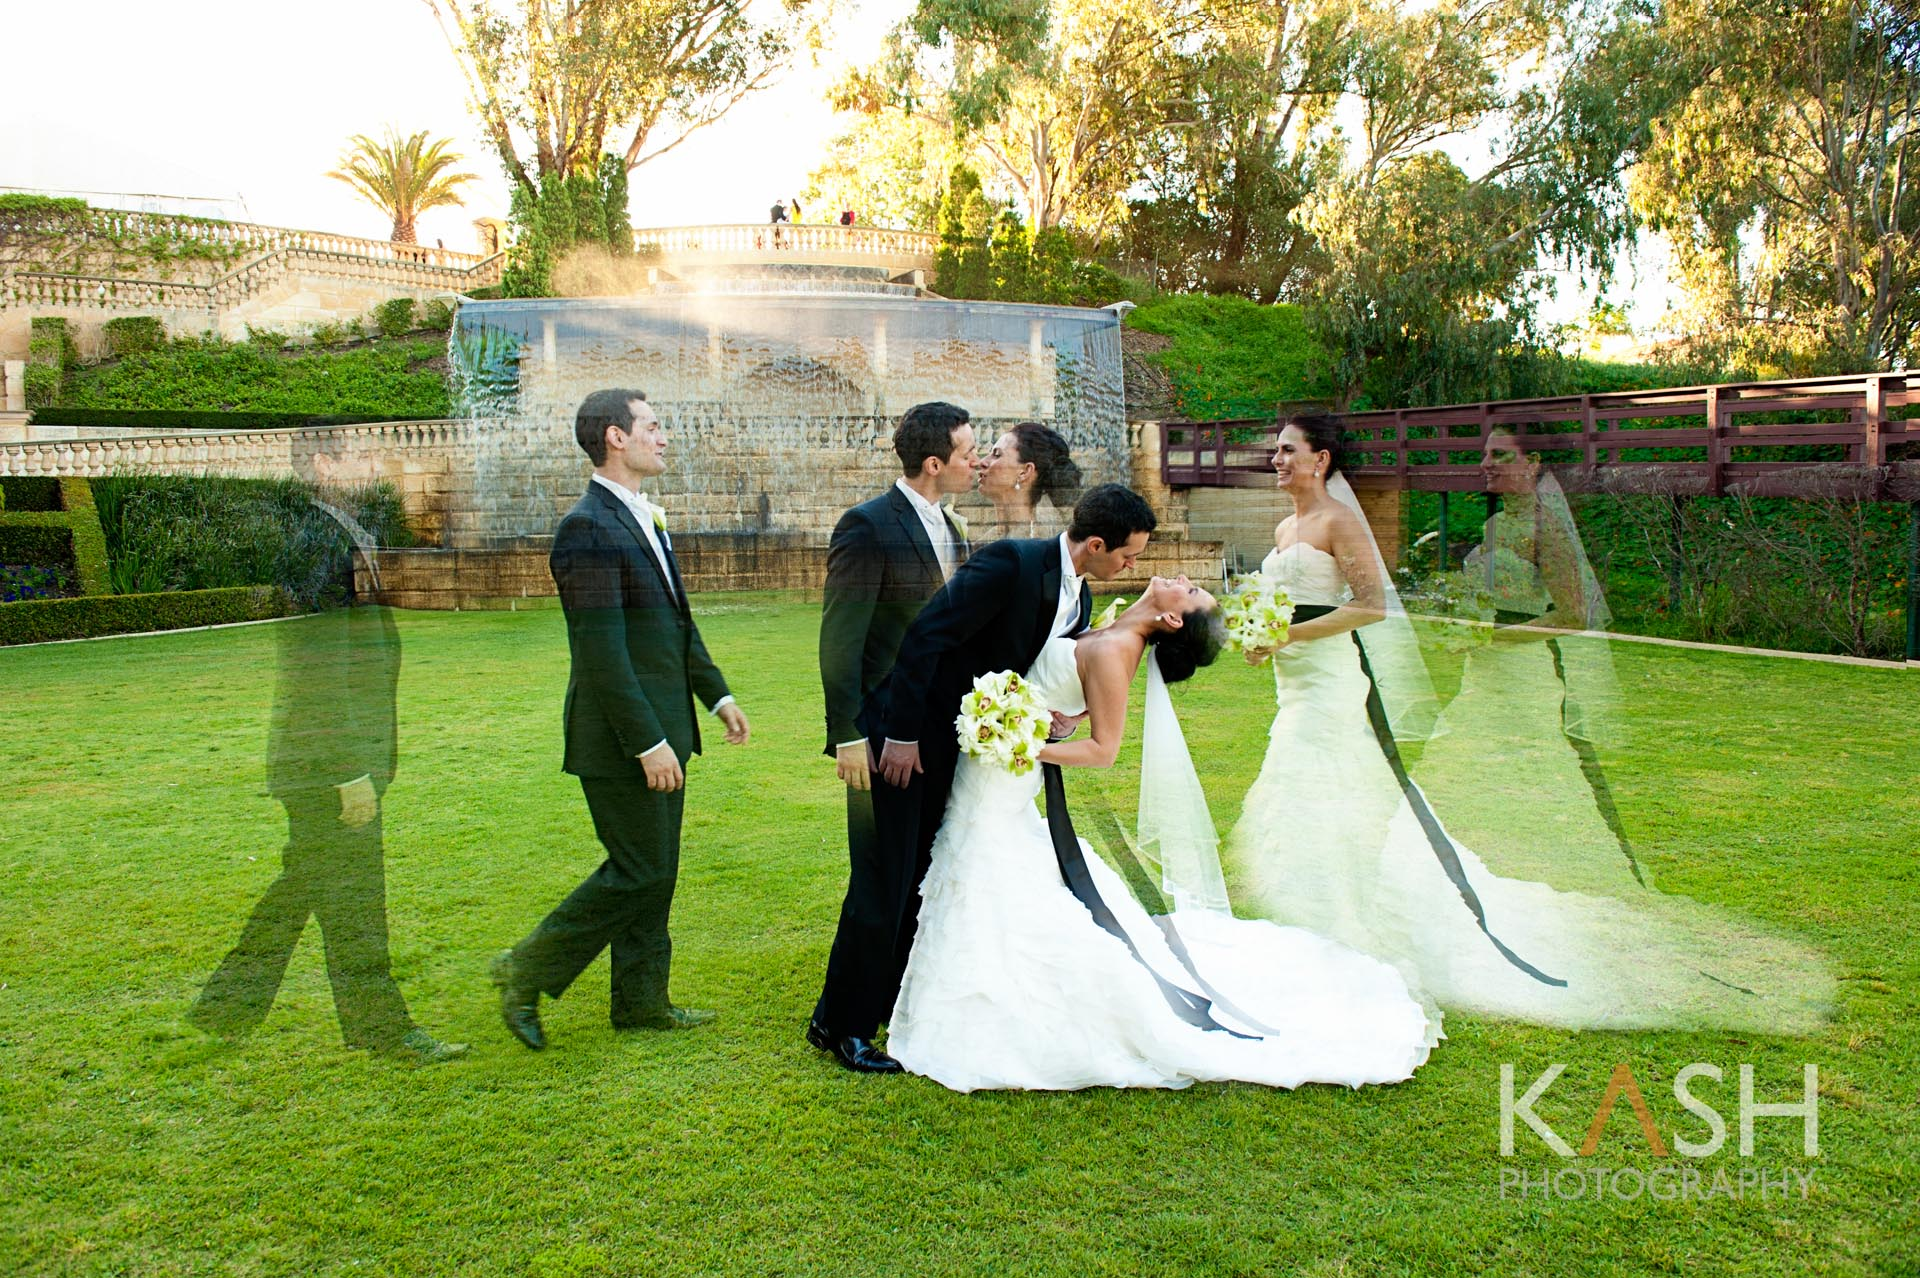 KASH PHOTOGRAPHY 3725